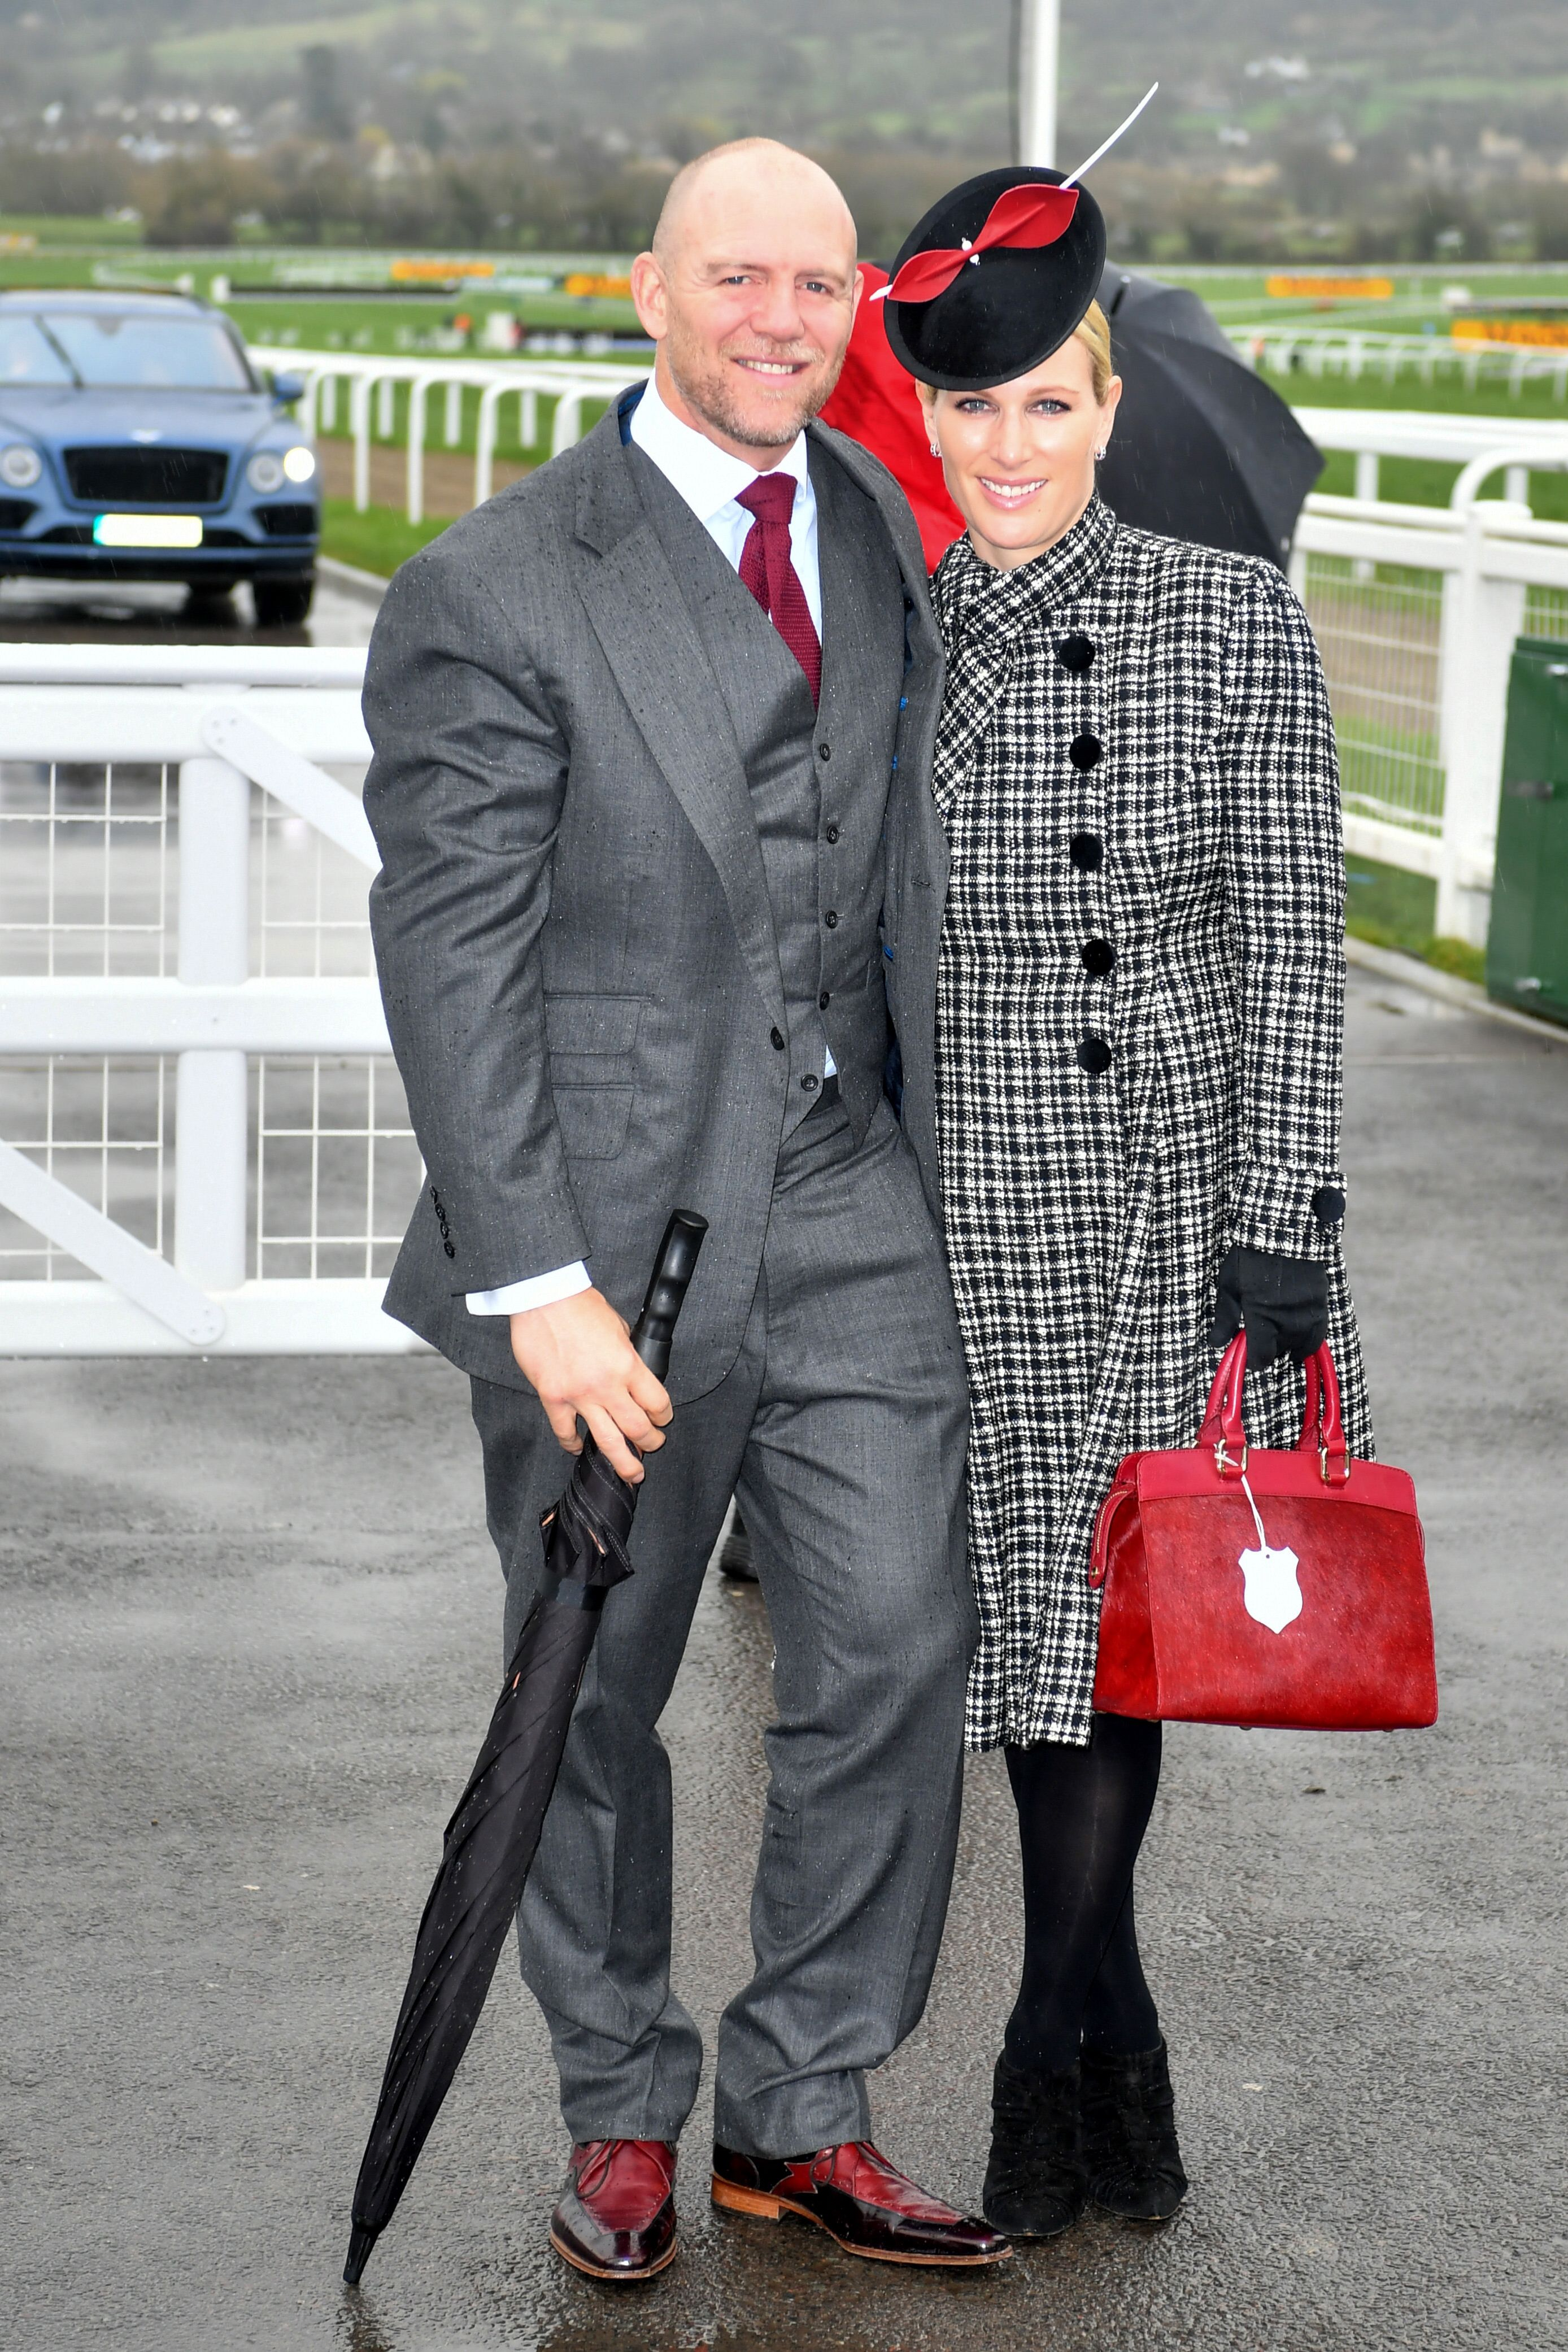 Mike and Zara Tindall attended Gold Cup Day at the Cheltenham races. Zara paired a black and white plaid coat with a red top handle bag, black booties and a black hat featuring a large red bow.